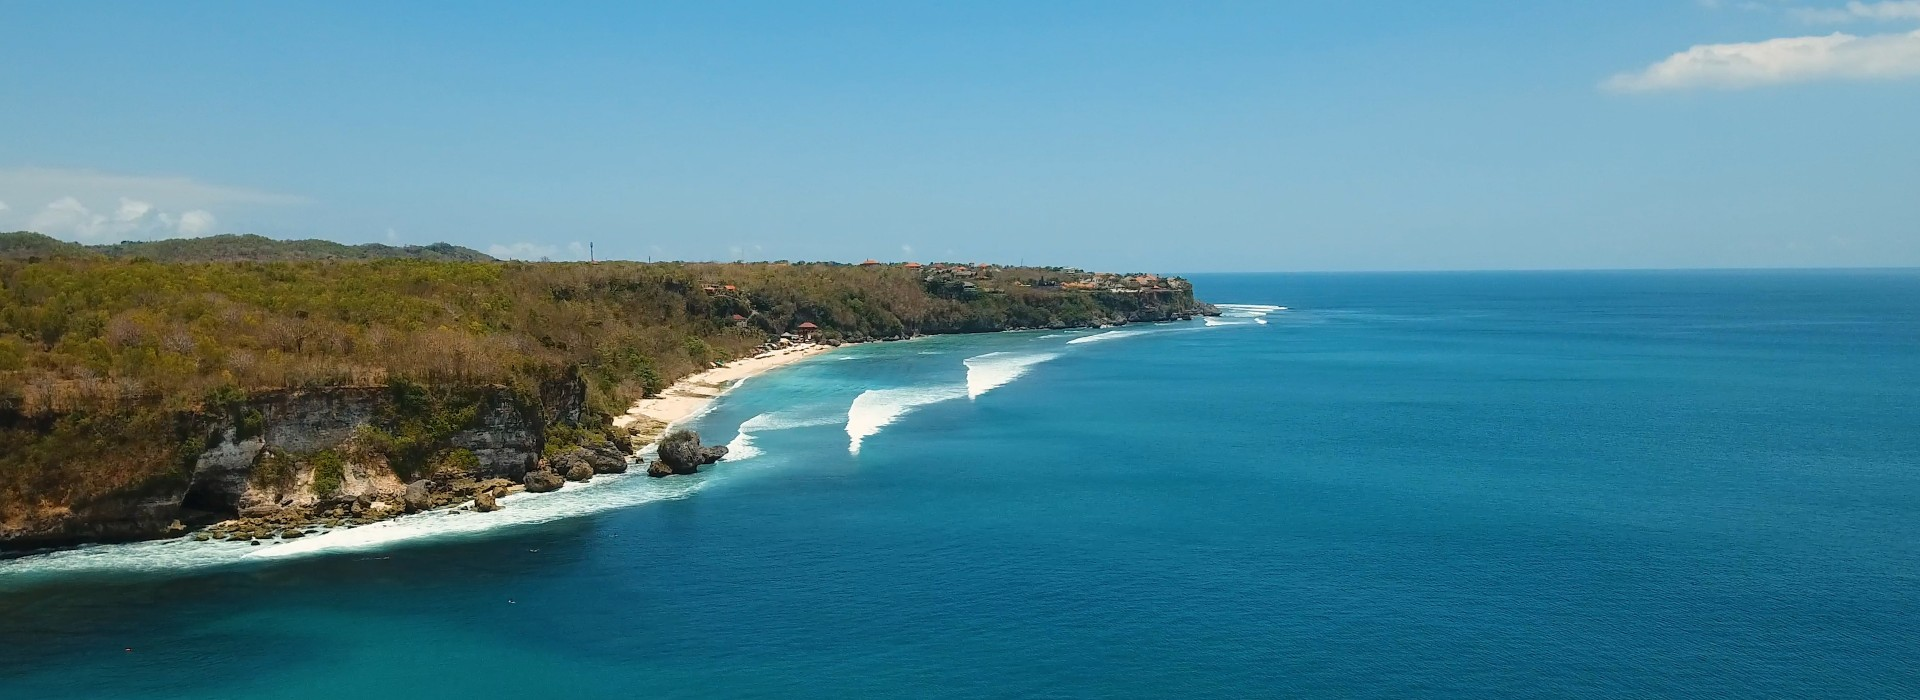 Kuta is the best known tourist area on the island of Bali in Indonesia